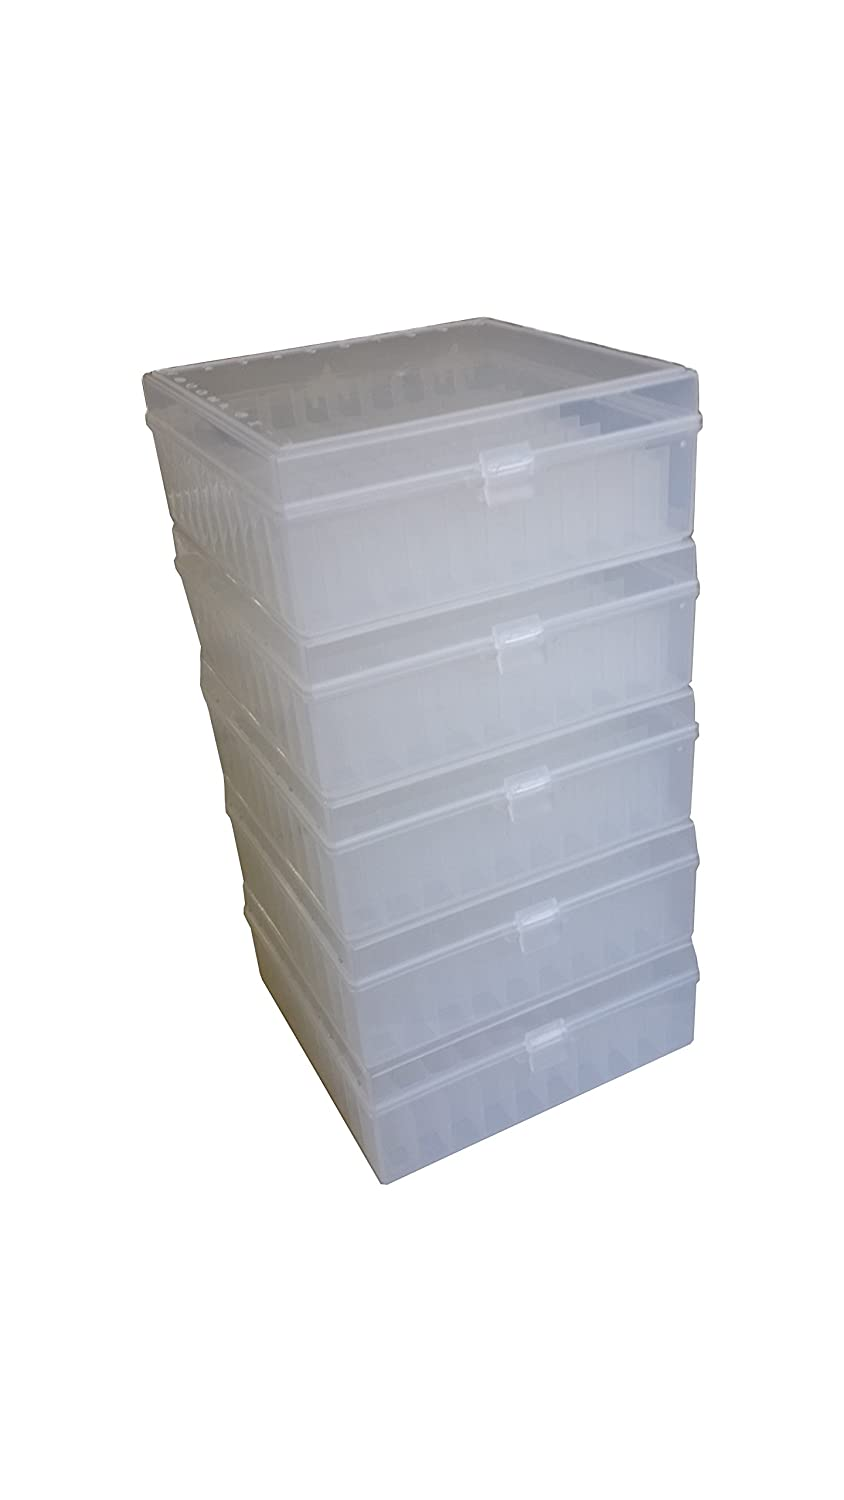 Argos R3125 Translucent Polypropylene 100 Place Microcentrifuge Tube Cryogenic Storage Box with Natural Lid for 0.5, 1.5 and 2.0mL Microcentrifuge Tubes (Pack of 5) Thomas Scientific ARG-R3125